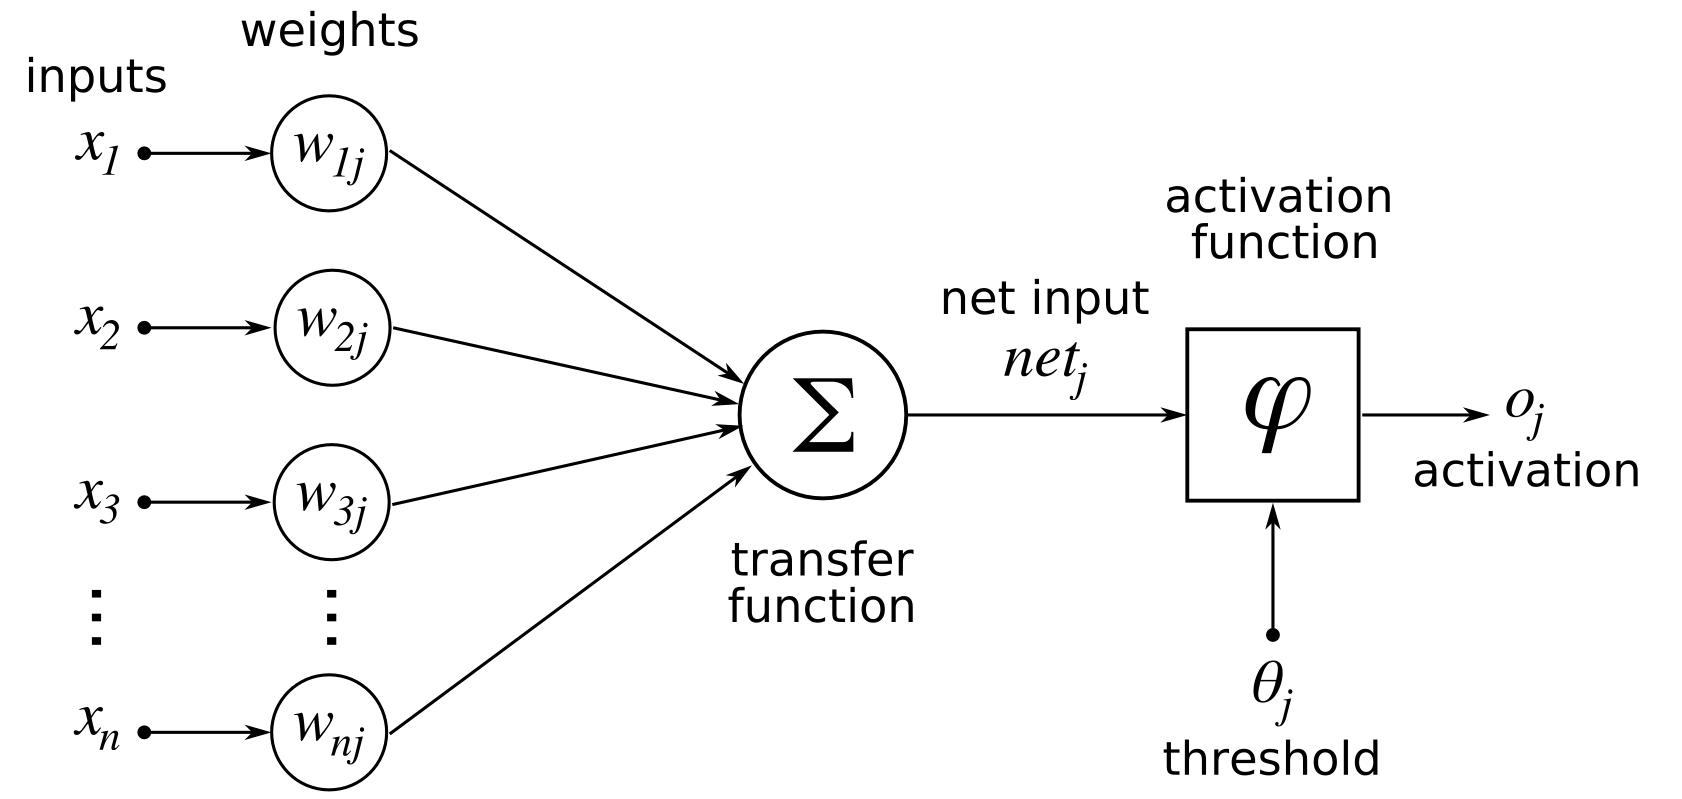 hight resolution of empty diagram of neuron